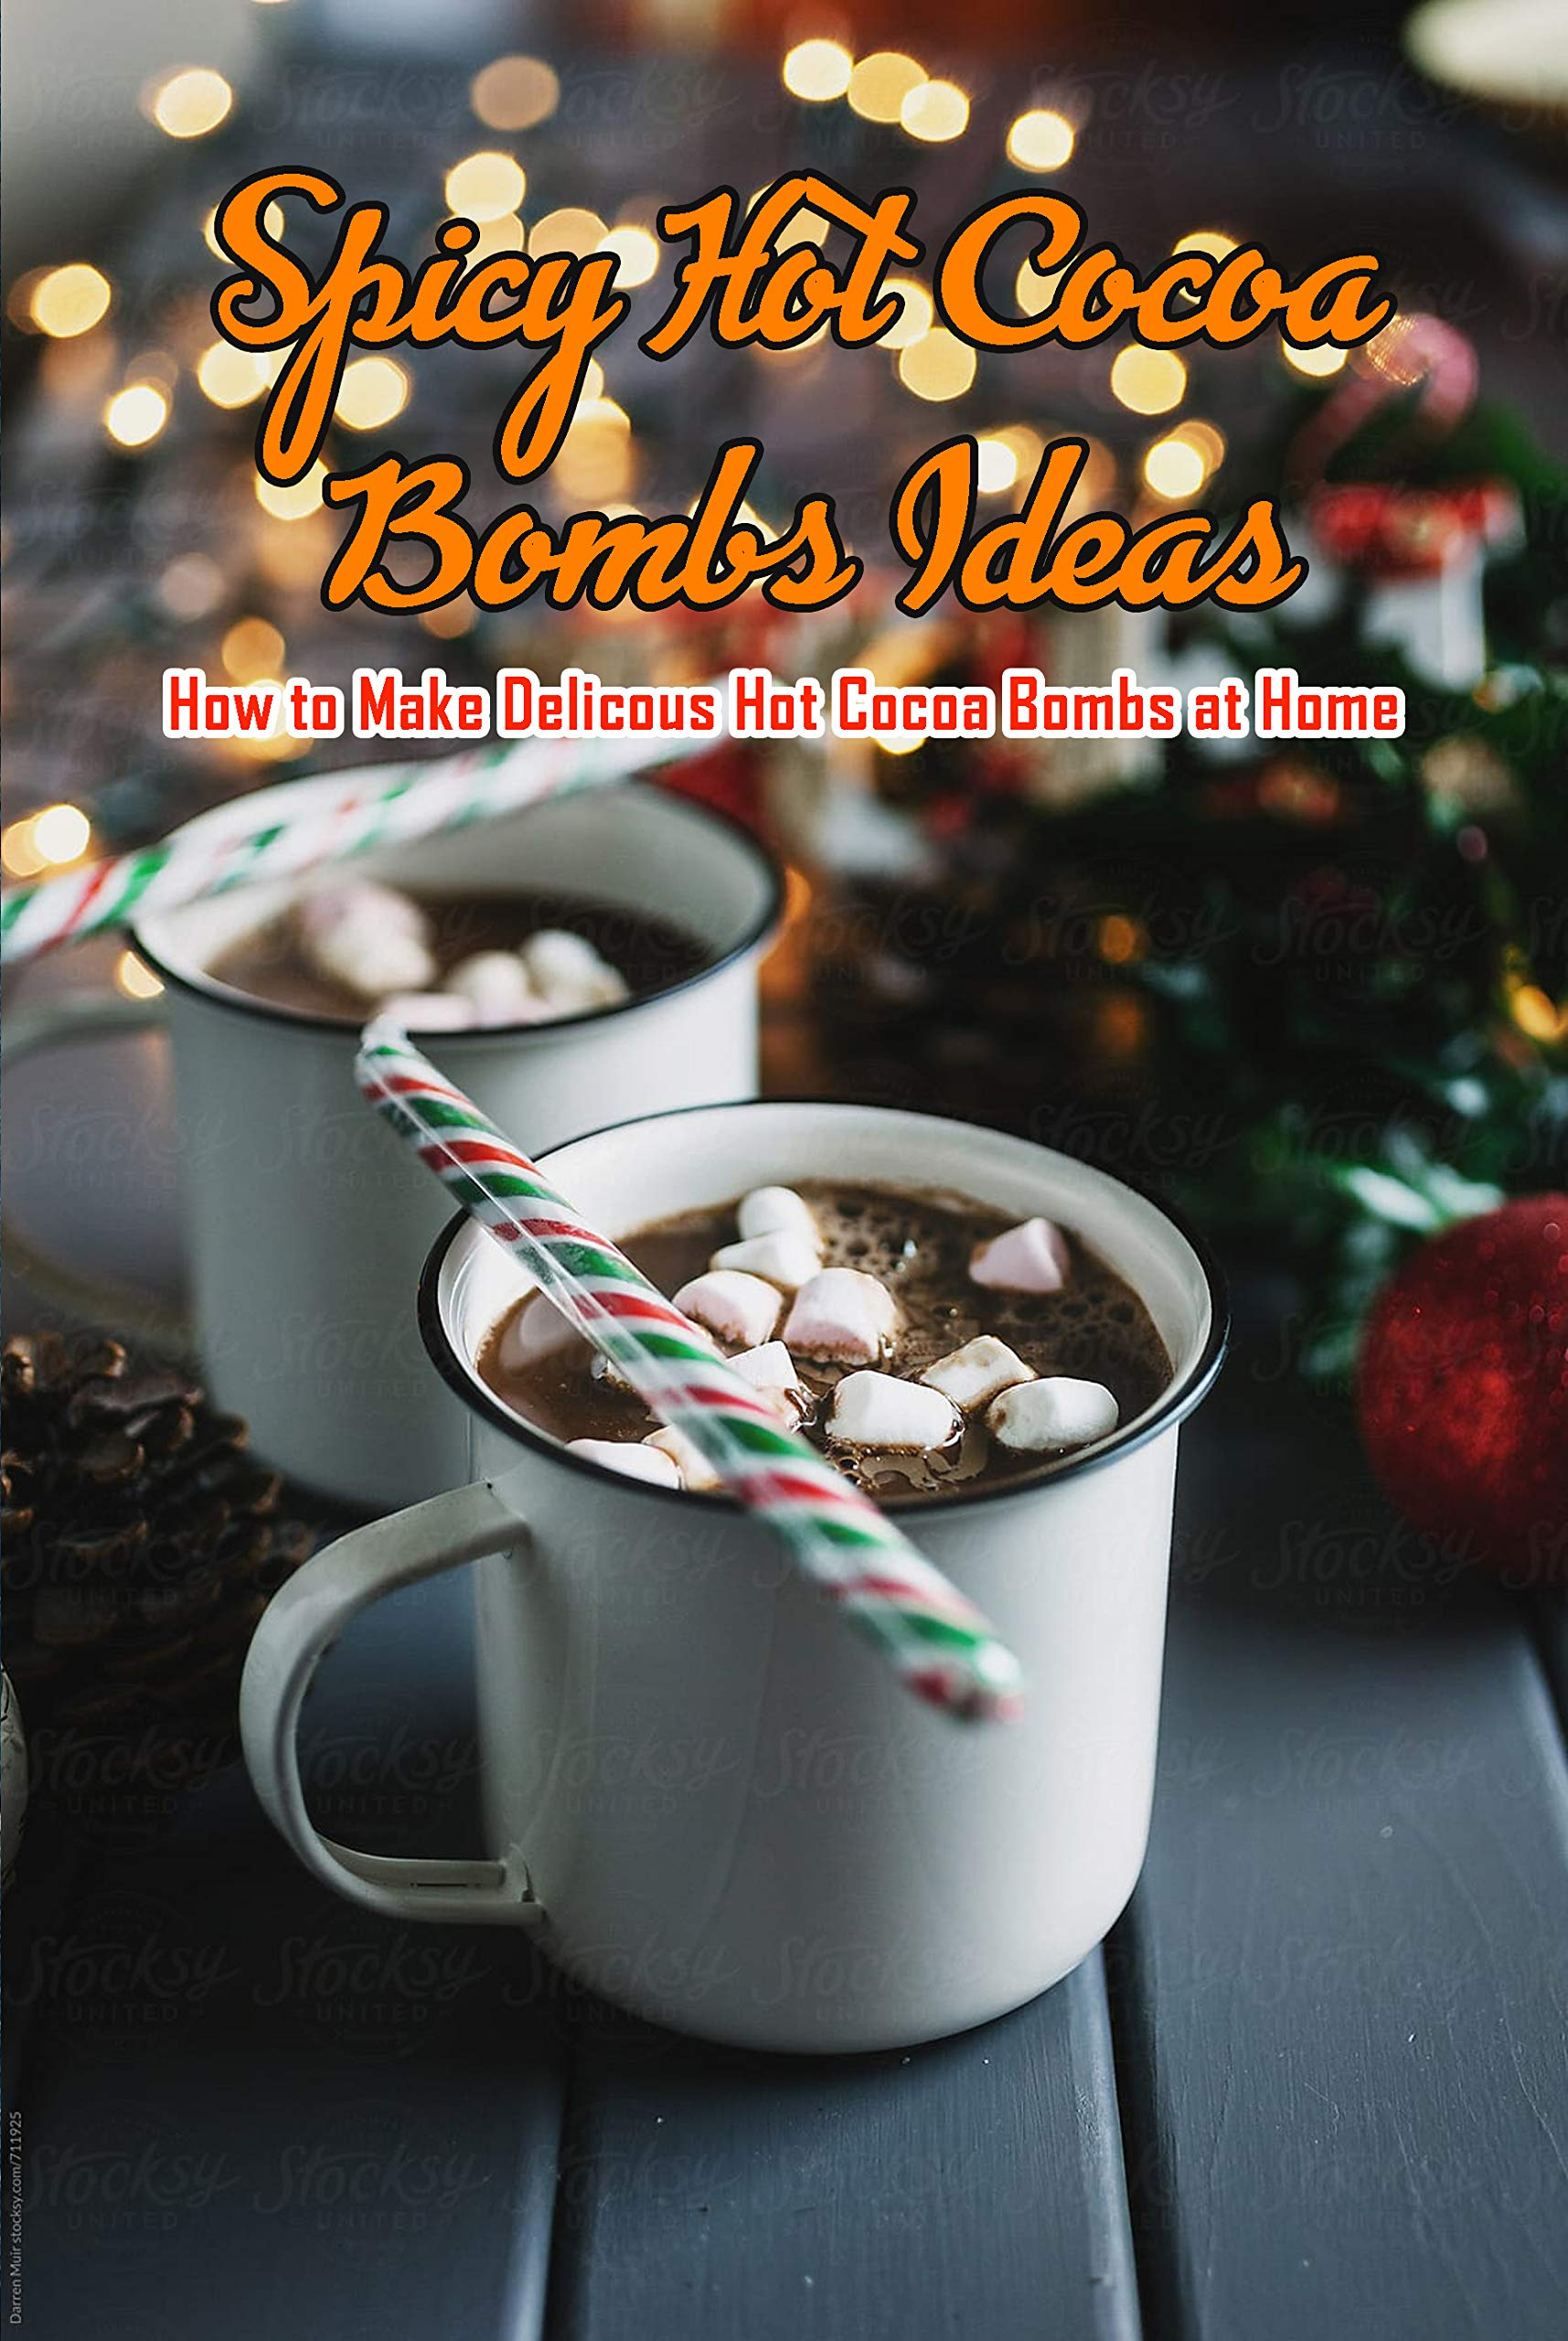 Spicy Hot Cocoa Bombs Ideas: How to Make Delicous Hot Cocoa Bombs at Home: Make Hot Chocolate Bombs by Yourself